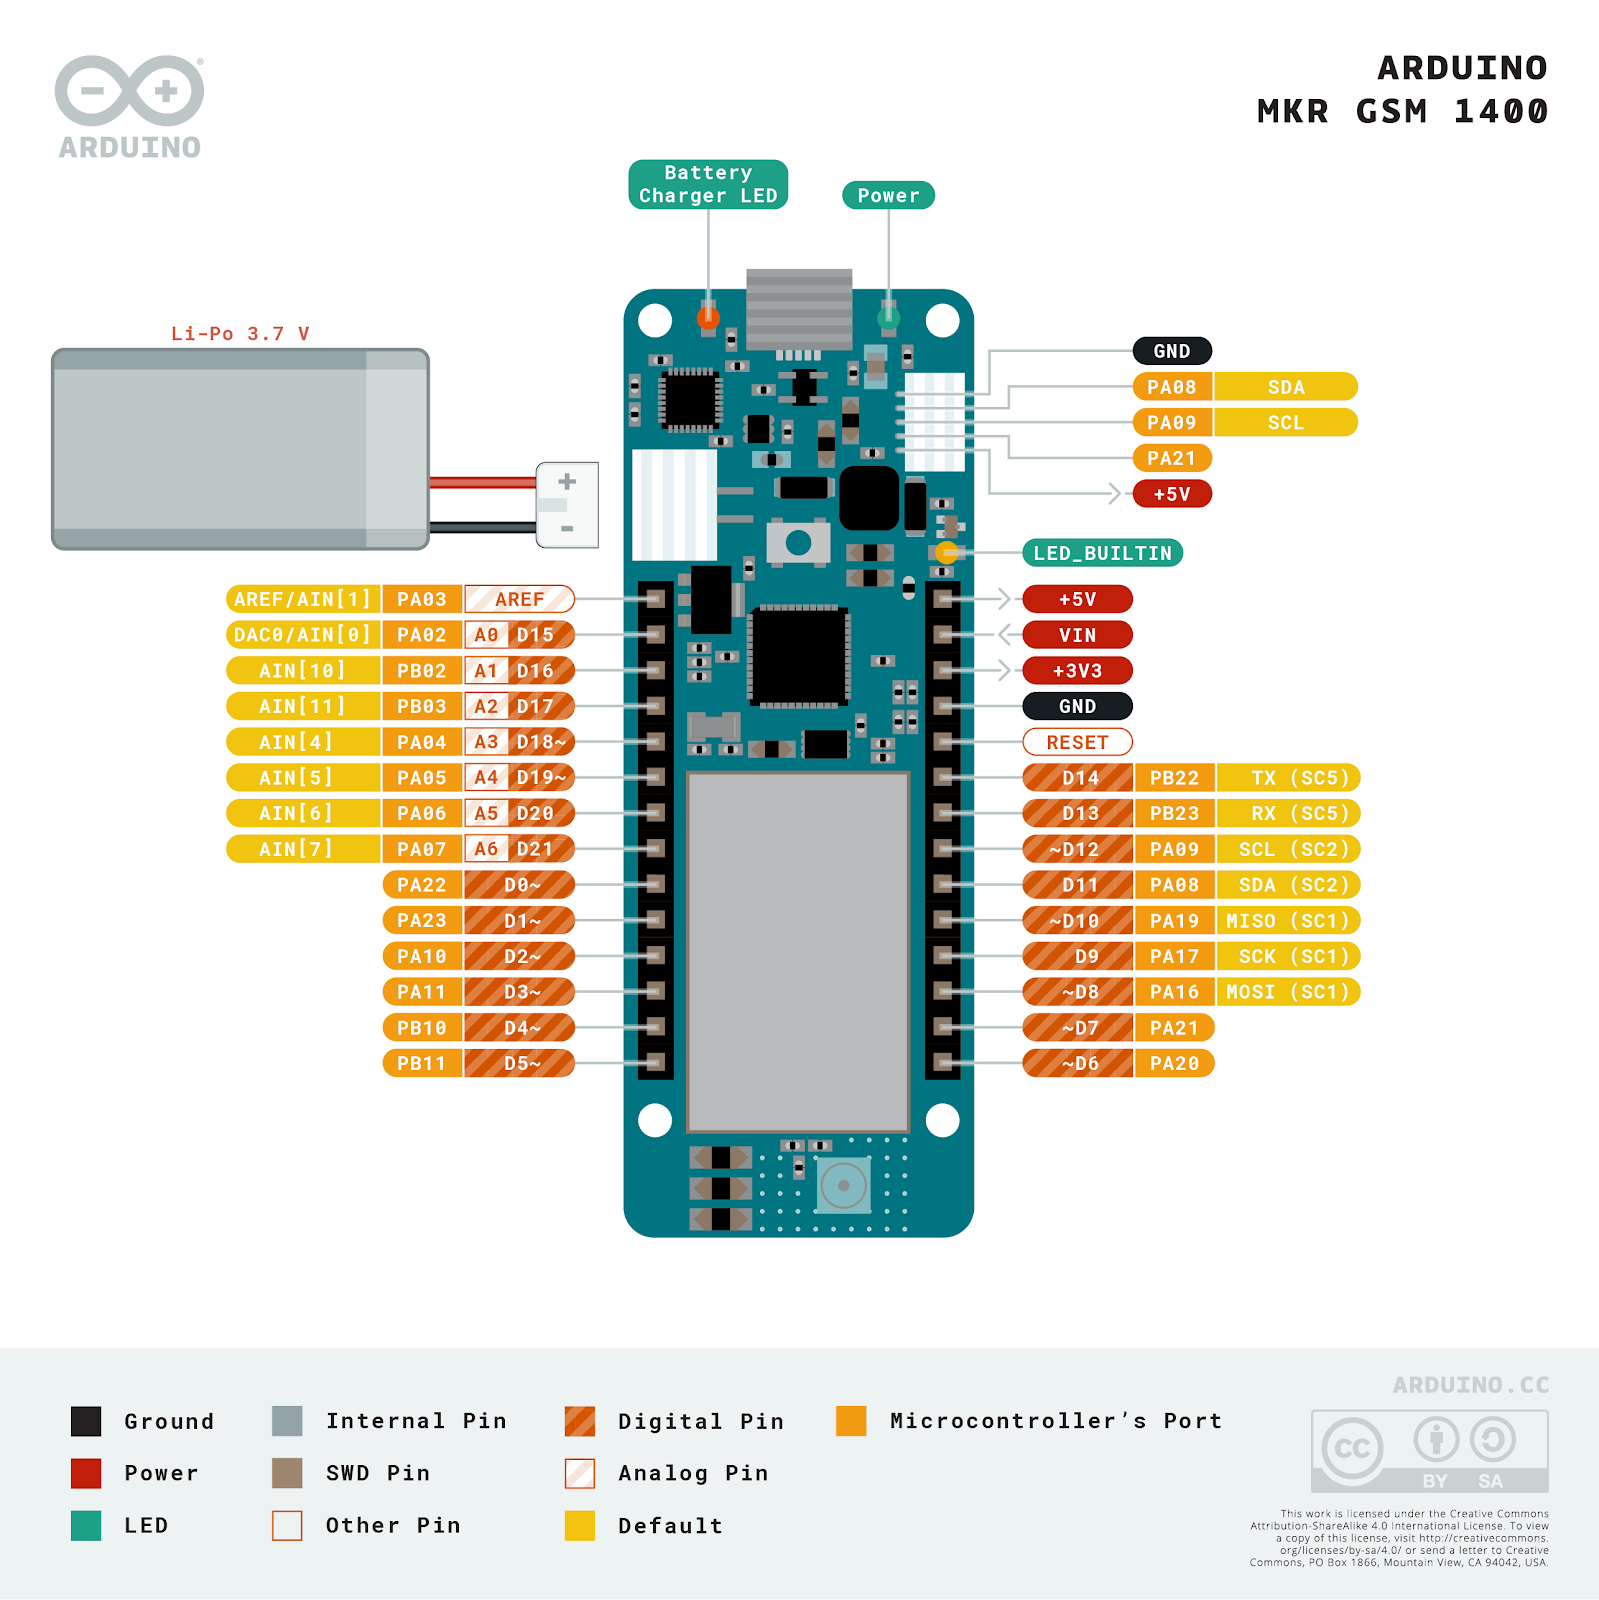 Getting Started With Super Sim And The Arduino Mkr Gsm 1400 Twilio